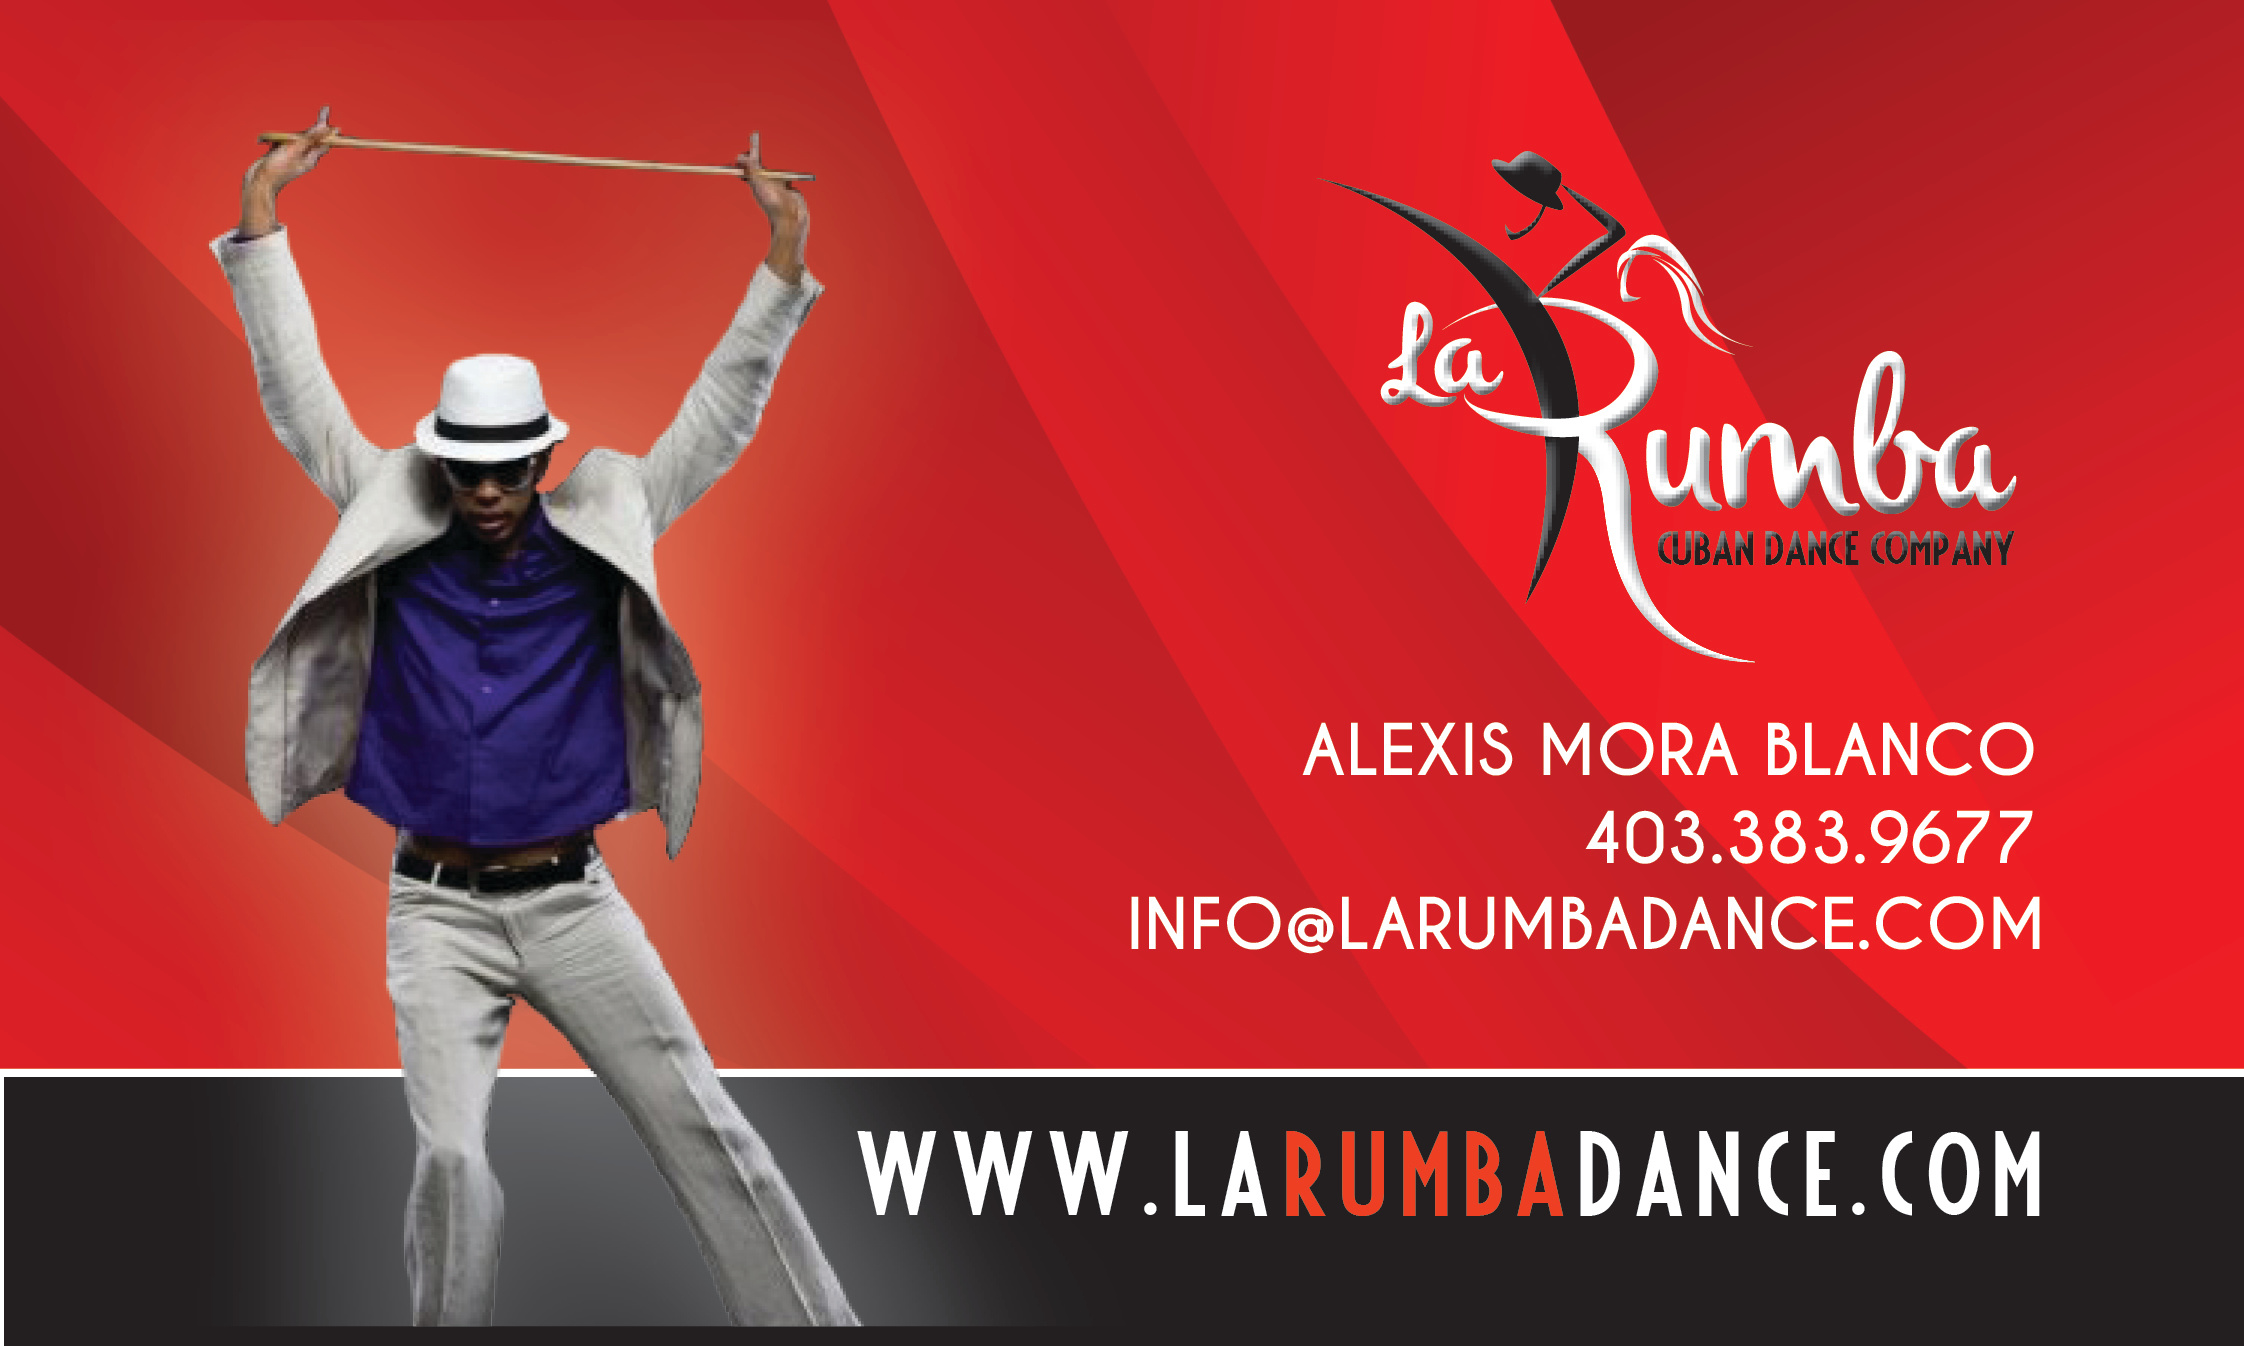 CLIENT: LA RUMBA CUBAN DANCE CO.